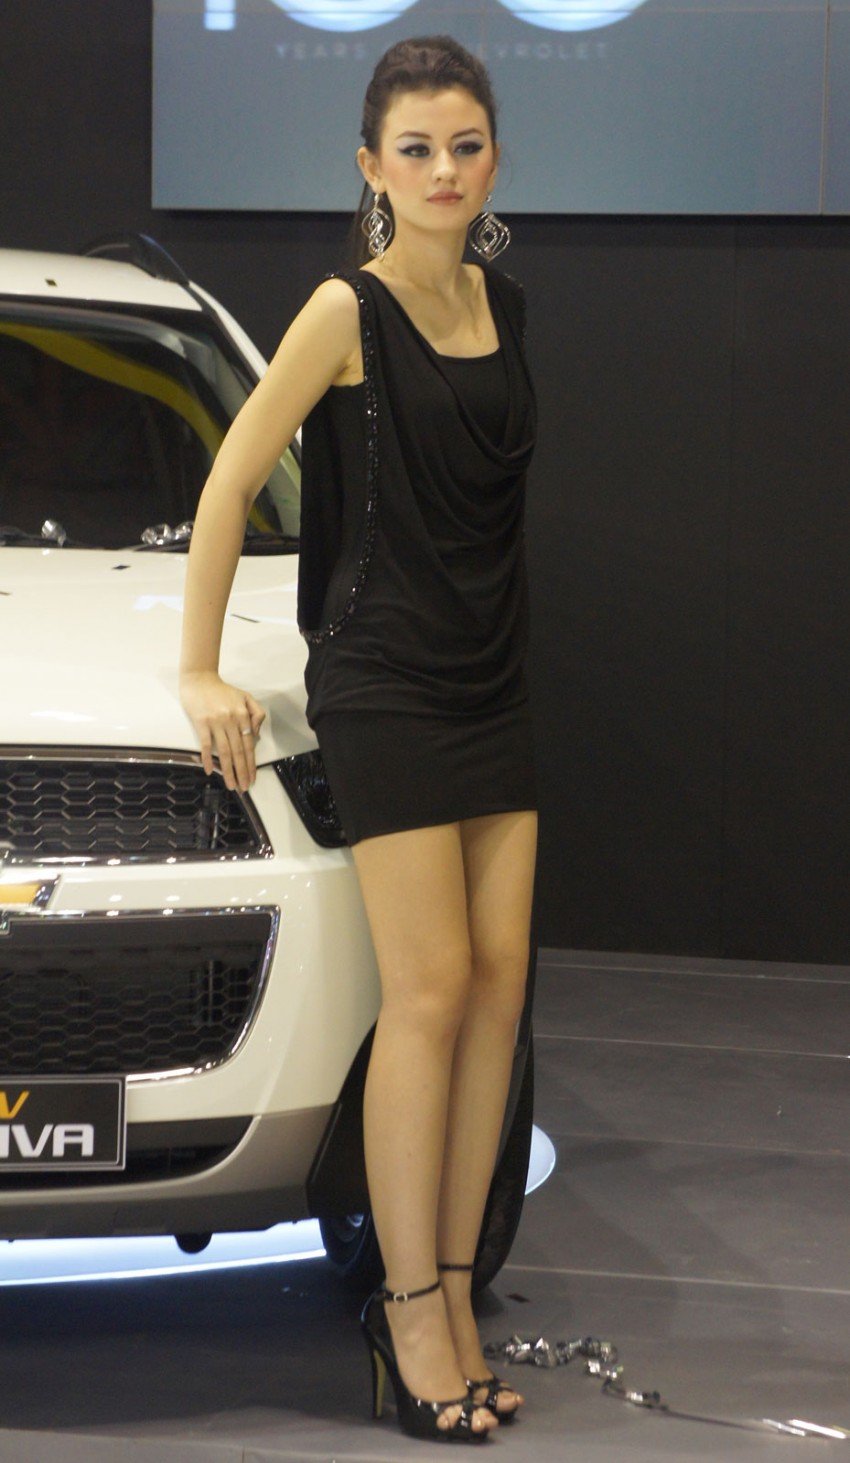 The ladies of IIMS – 100 pics for you to feast your eyes on! Image #65859